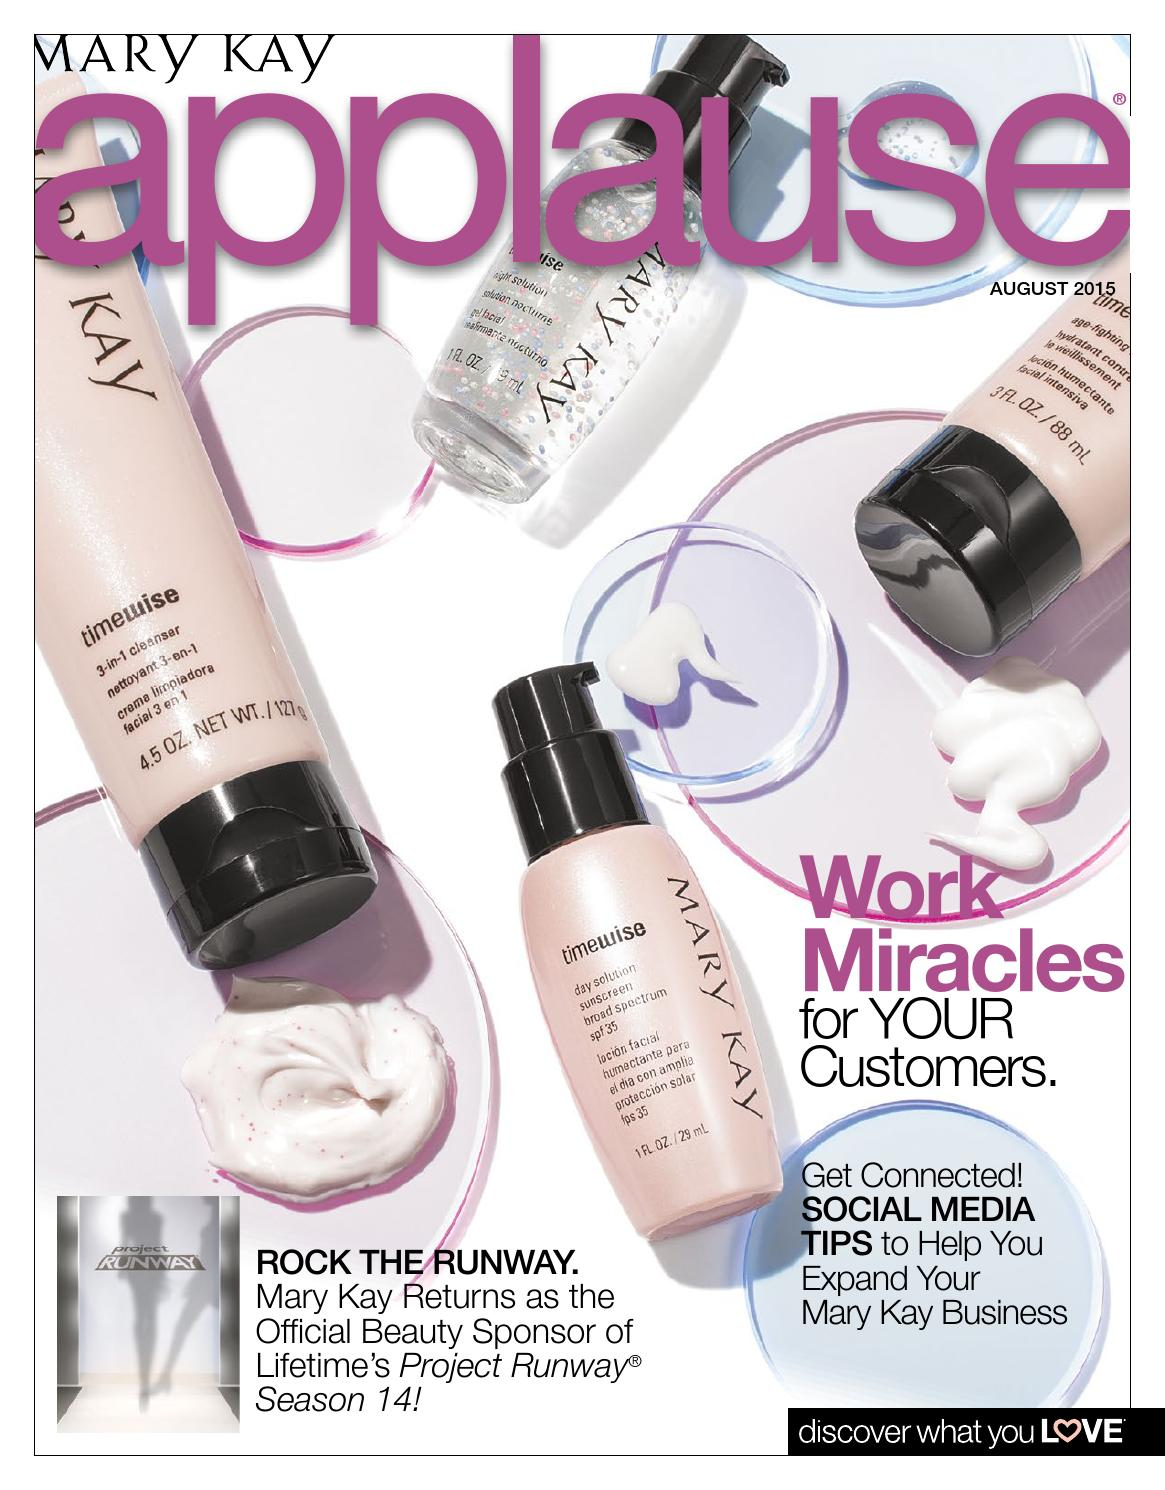 Mary kay online agreement on intouch - Mary Kay Online Agreement On Intouch 23